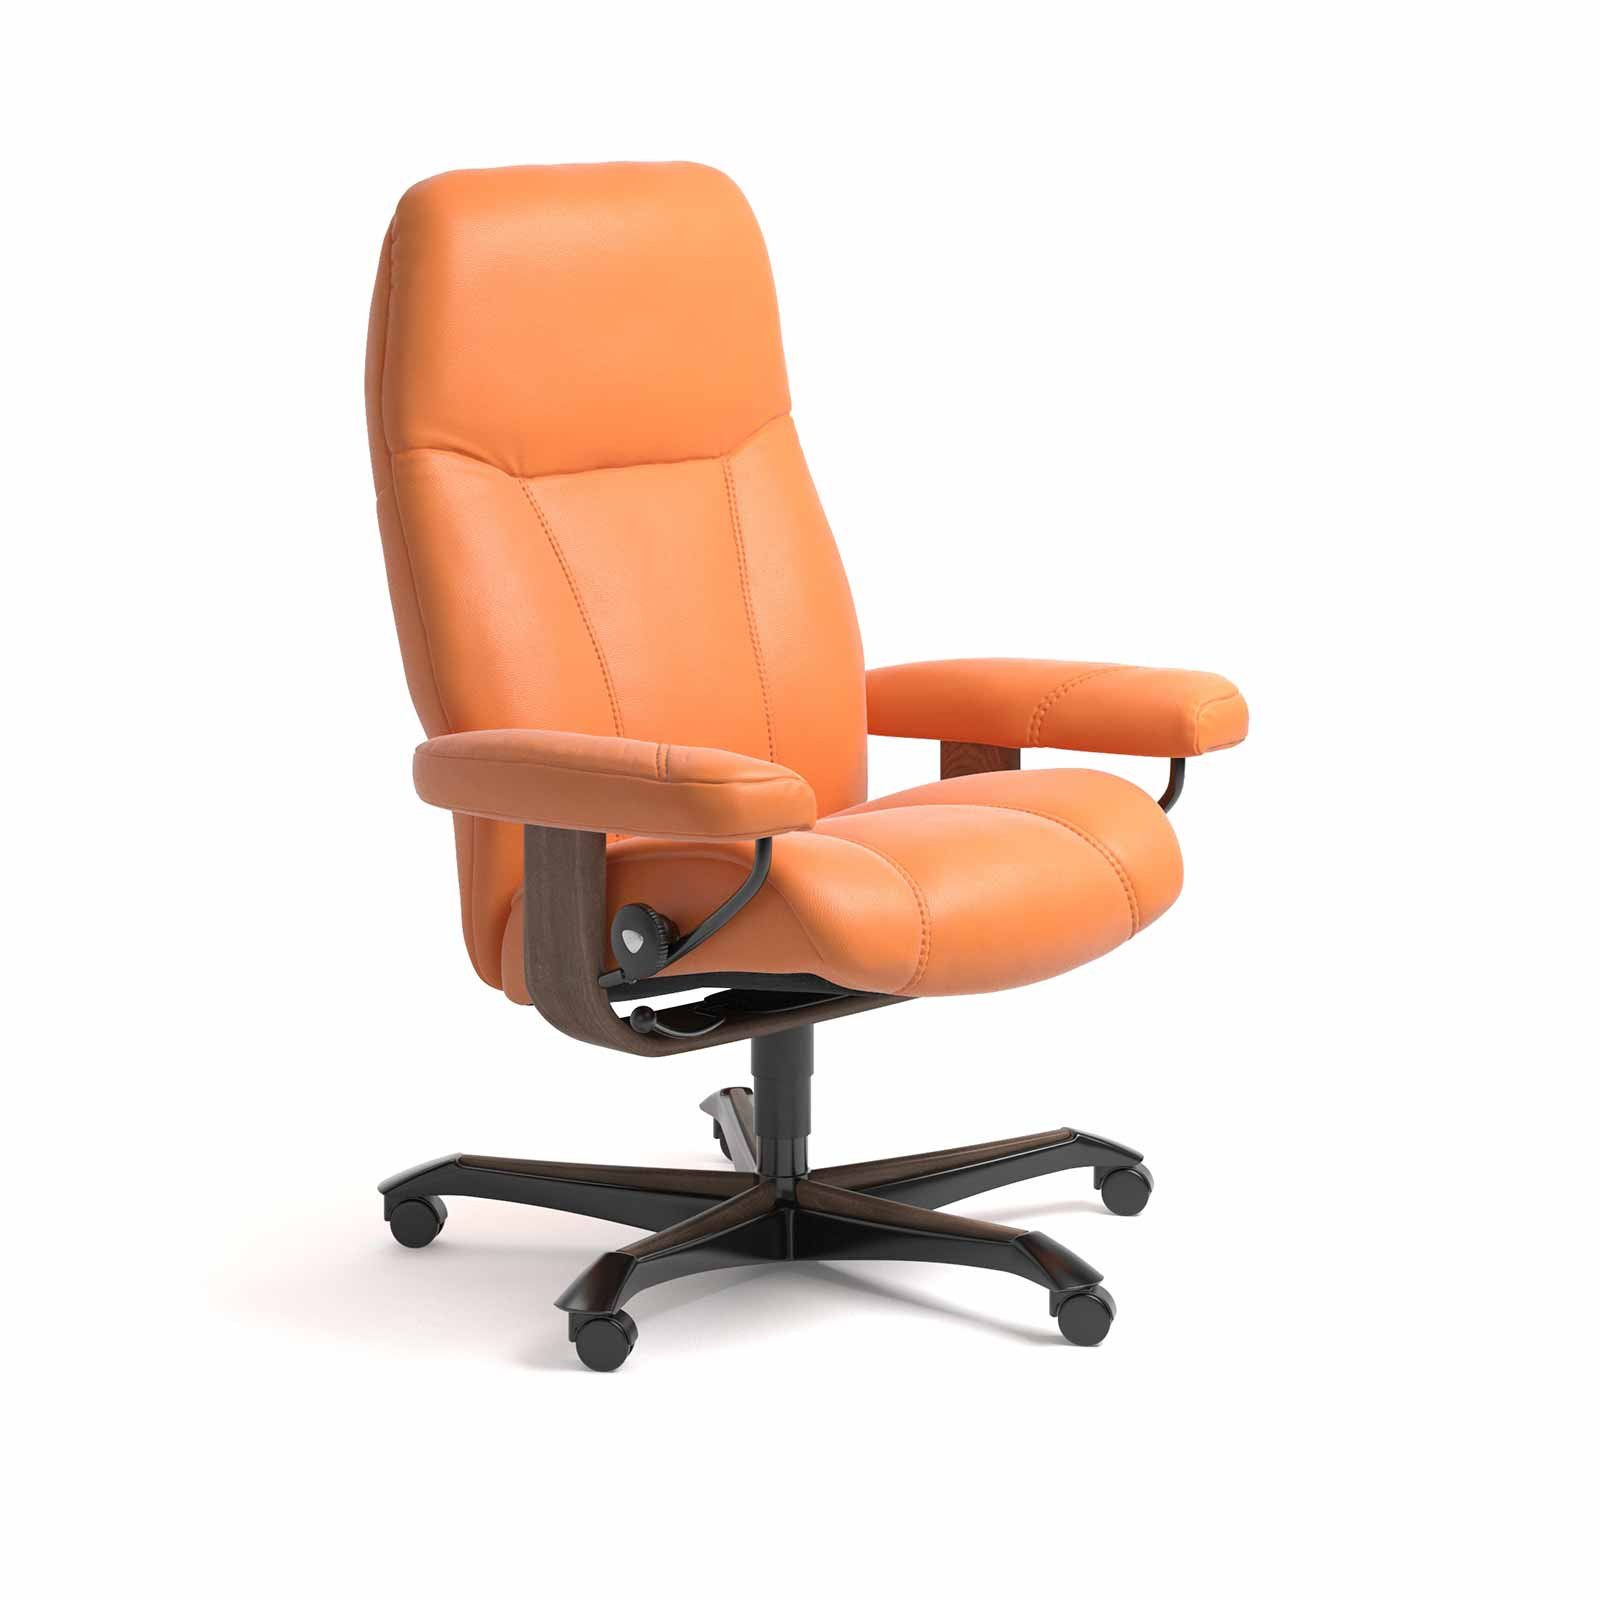 Relaxsessel Mit Rollen Stressless Sessel Consul Home Office Leder Paloma Apricot Orange